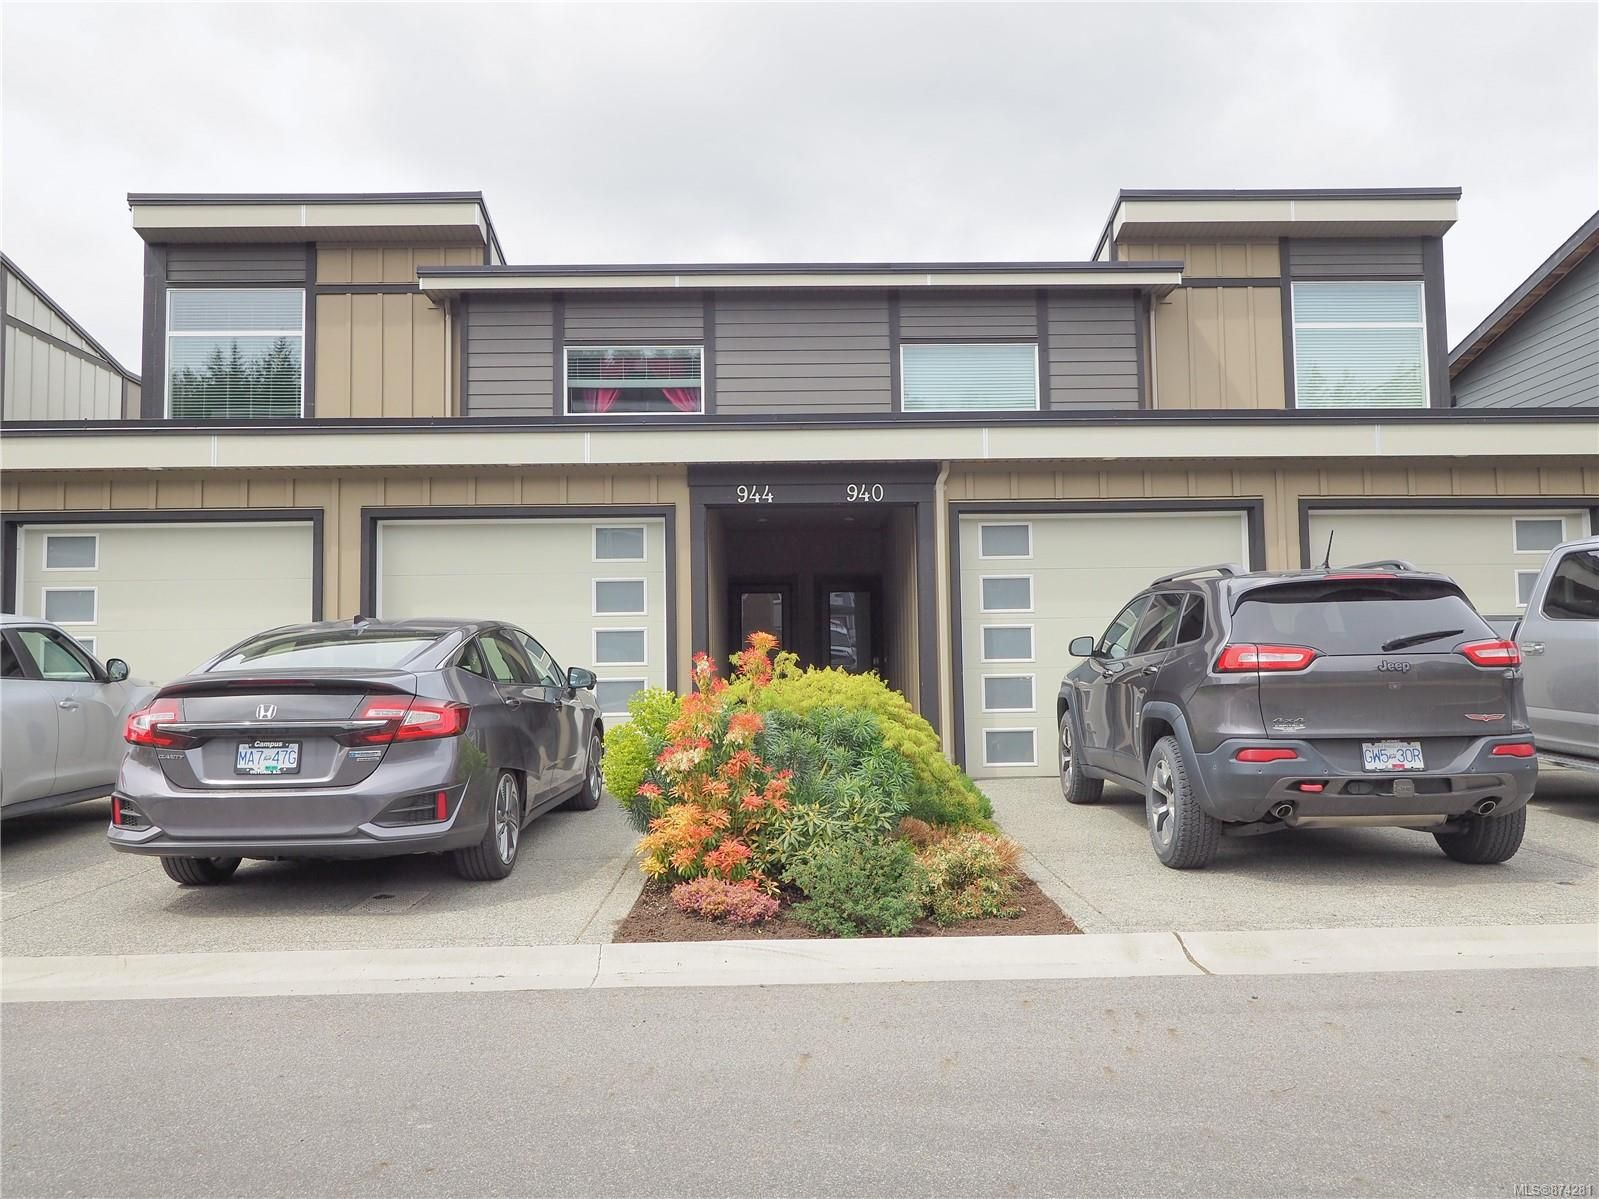 Main Photo: 944 Warbler Close in : La Happy Valley Row/Townhouse for sale (Langford)  : MLS®# 874281